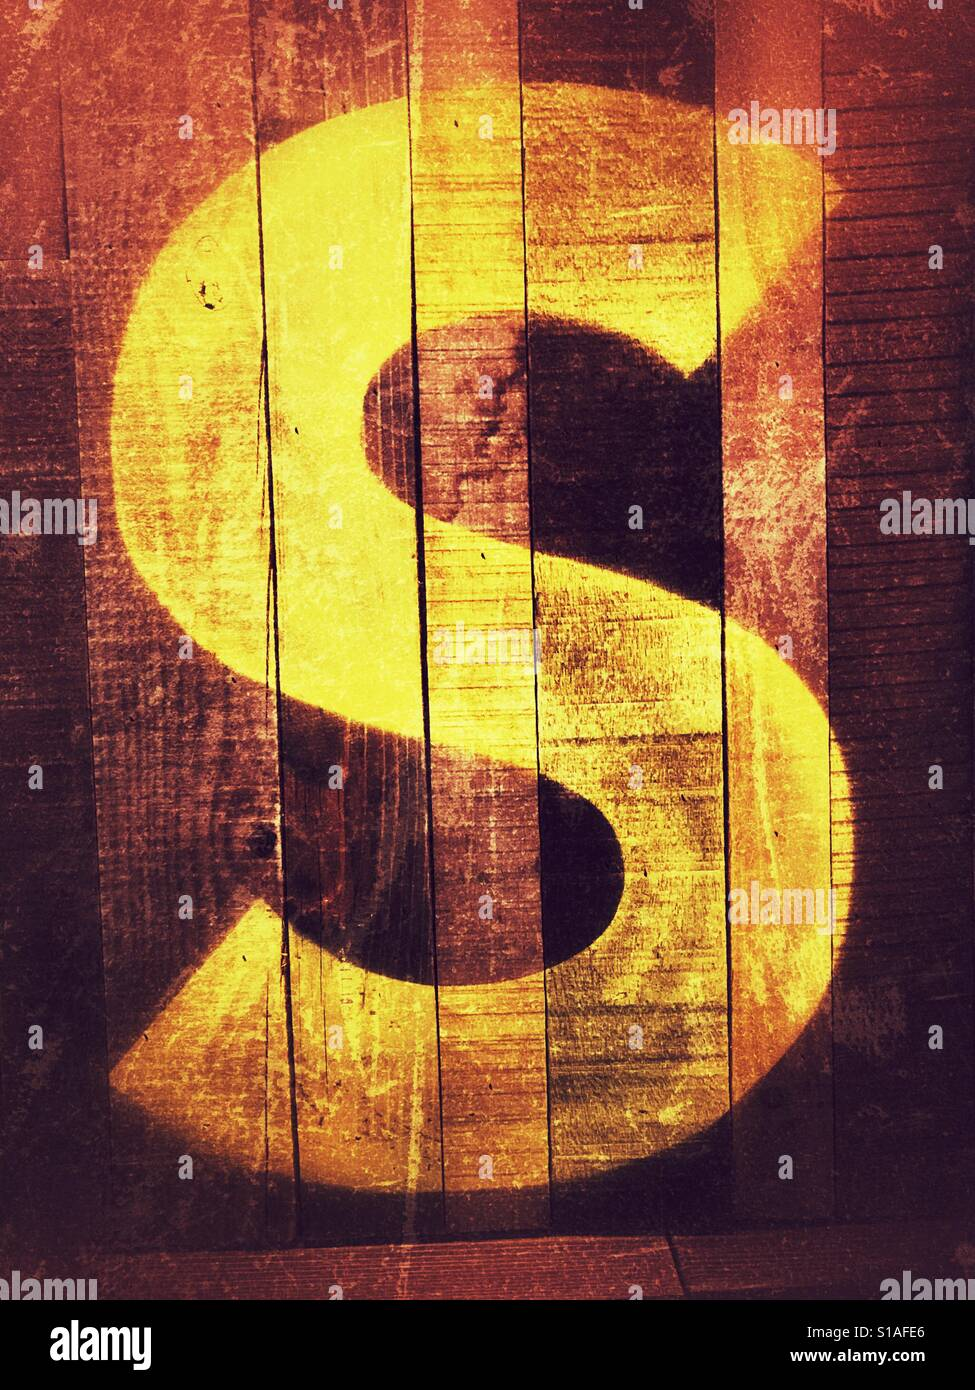 Letter S Stock Photos & Letter S Stock Images - Alamy